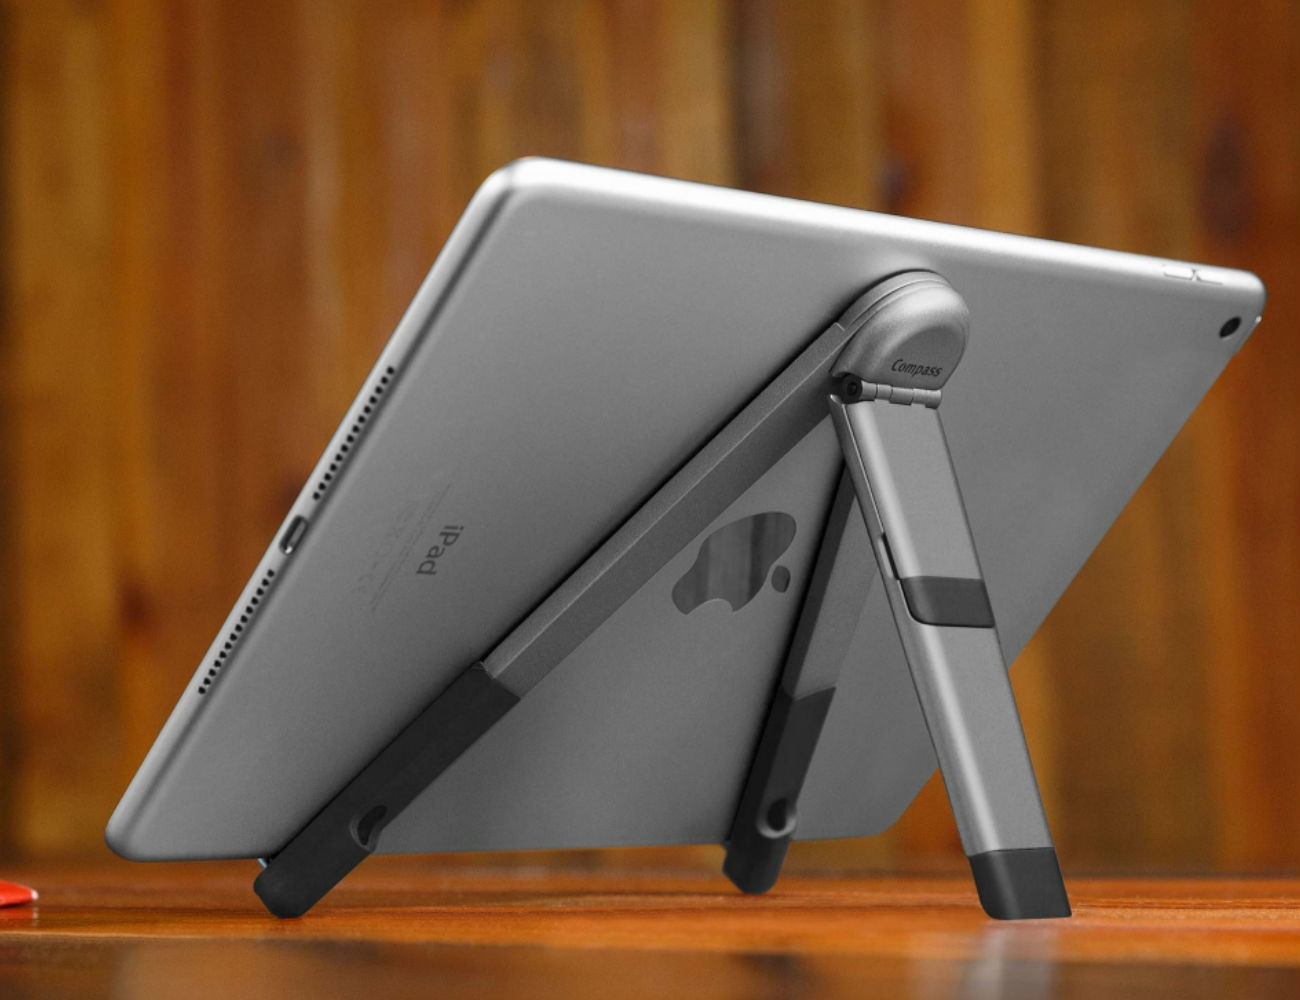 Twelve South Compass Pro Portable iPad Stand provides several viewing angles and orientations